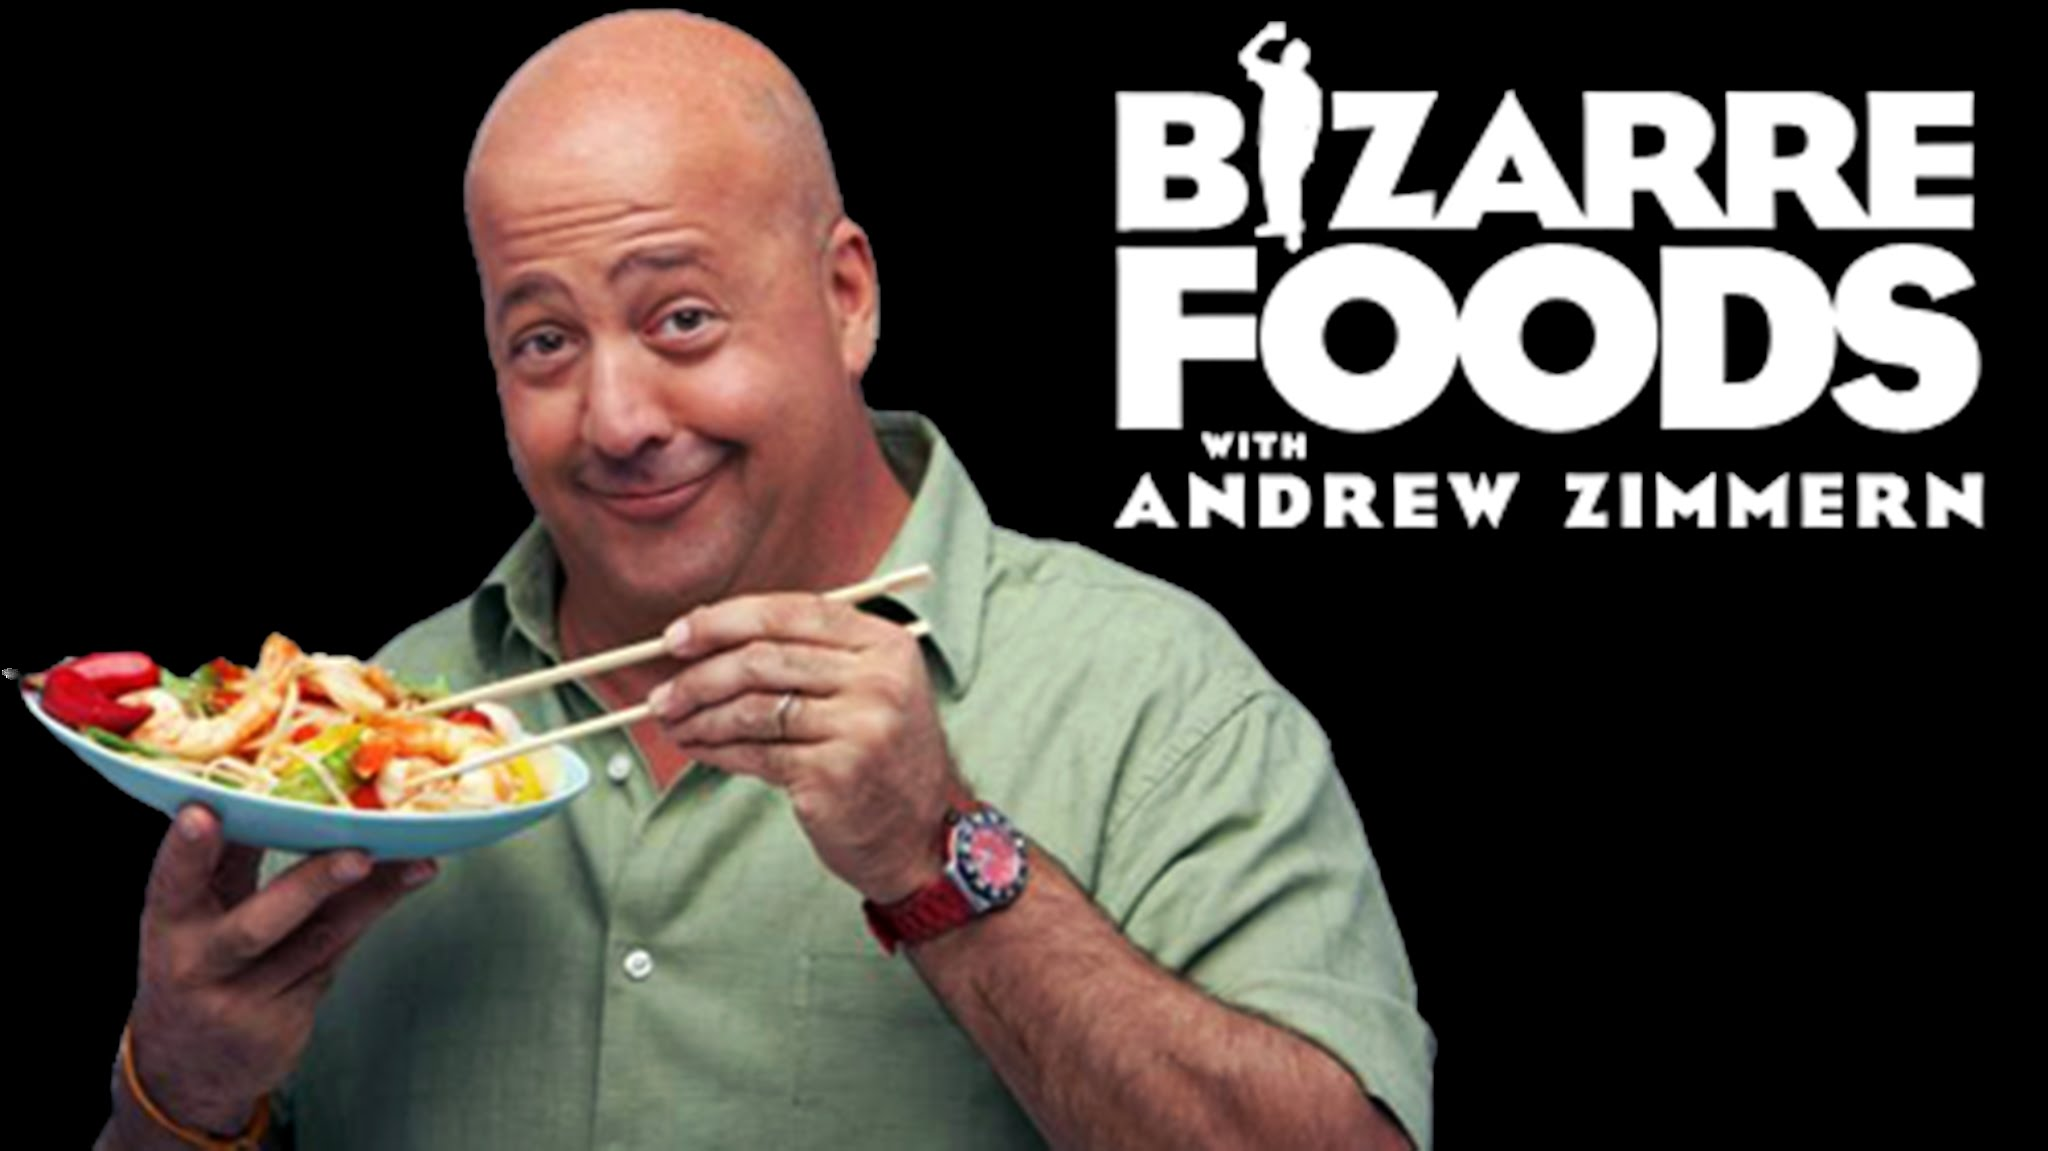 Bizarre Foods With Andrew Zimmern: Season 14